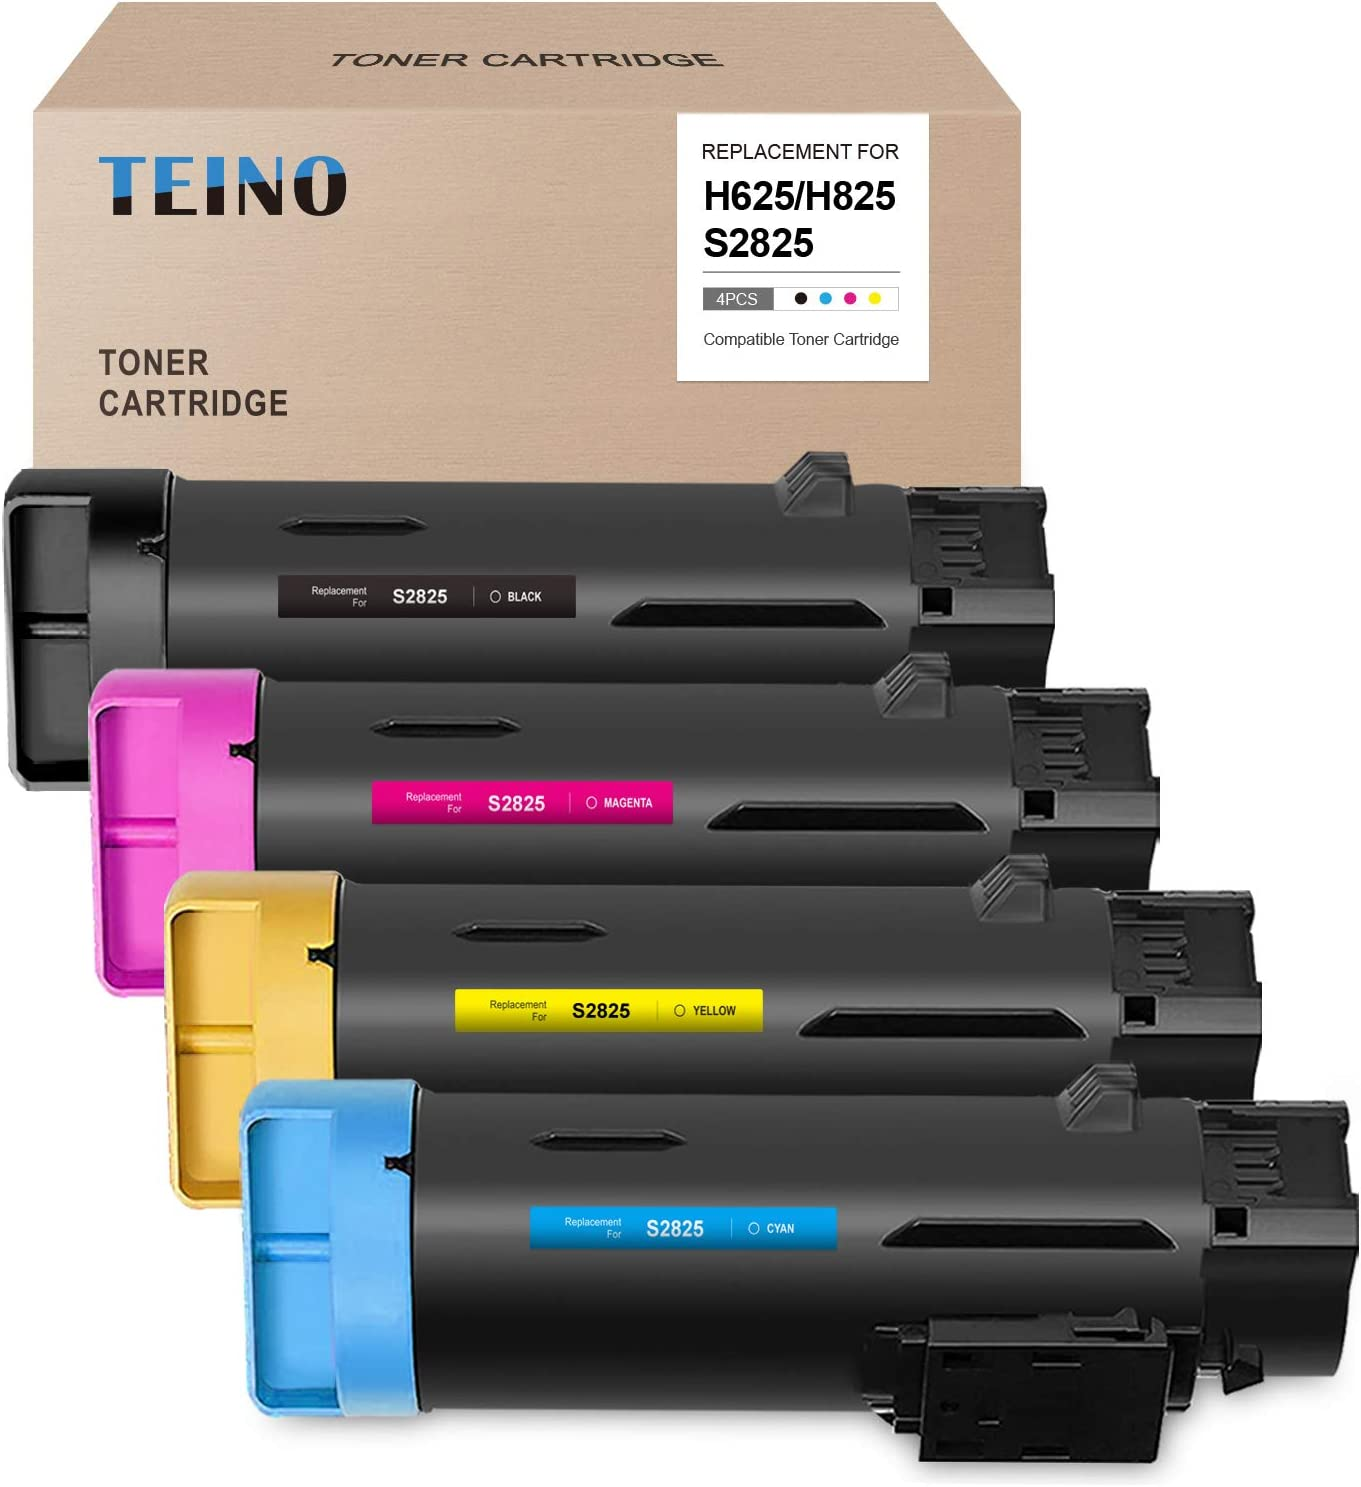 TEINO Compatible High Yield Toner Cartridge Replacement for Dell H625 H825 S2825 H625cdw H825cdw S2825cdn (Black, Cyan, Magenta, Yellow, 4-Pack)